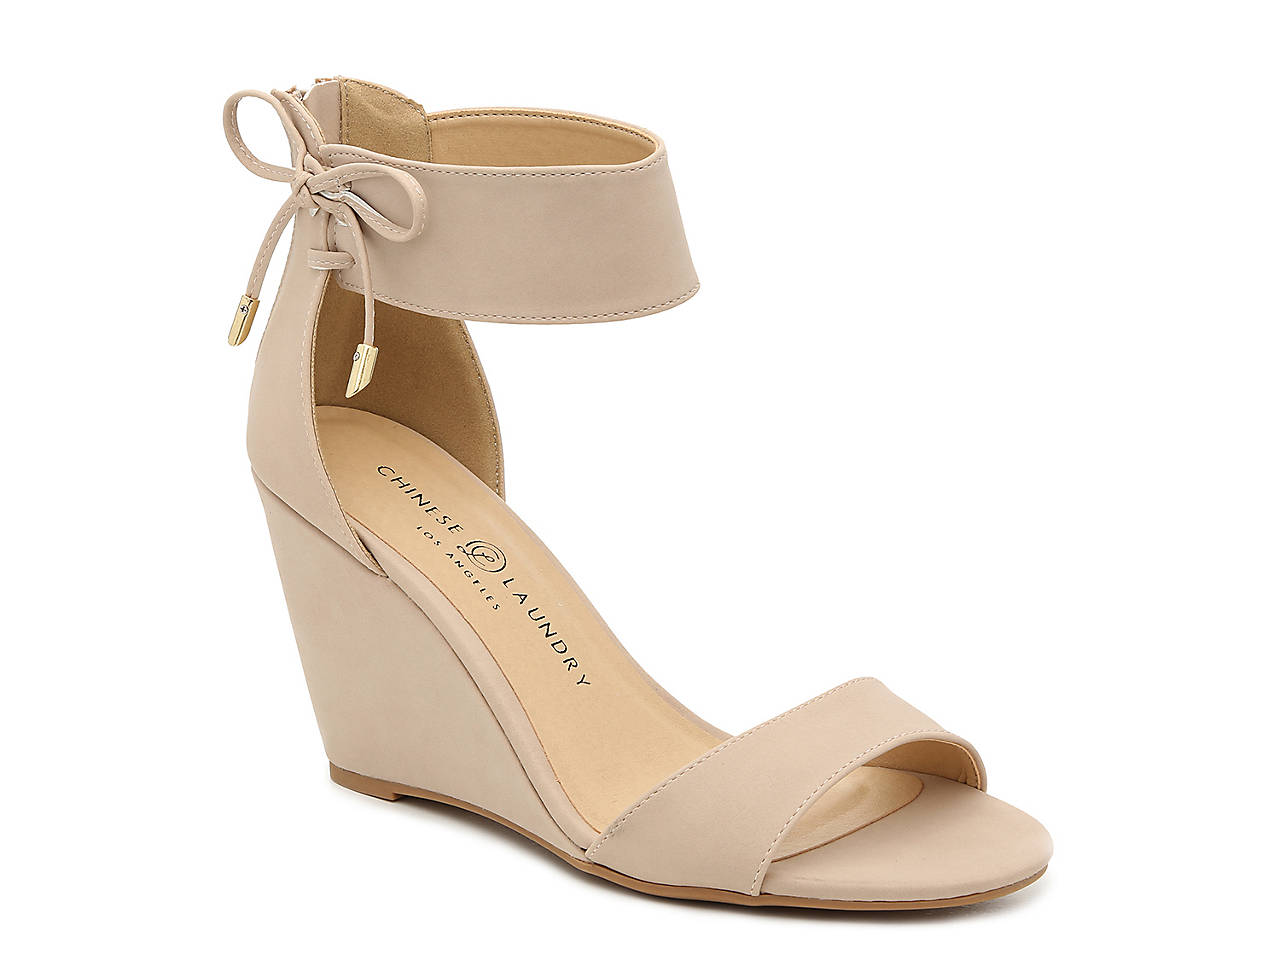 8481b011bc1 Chinese Laundry Camomile Wedge Sandal Women s Shoes